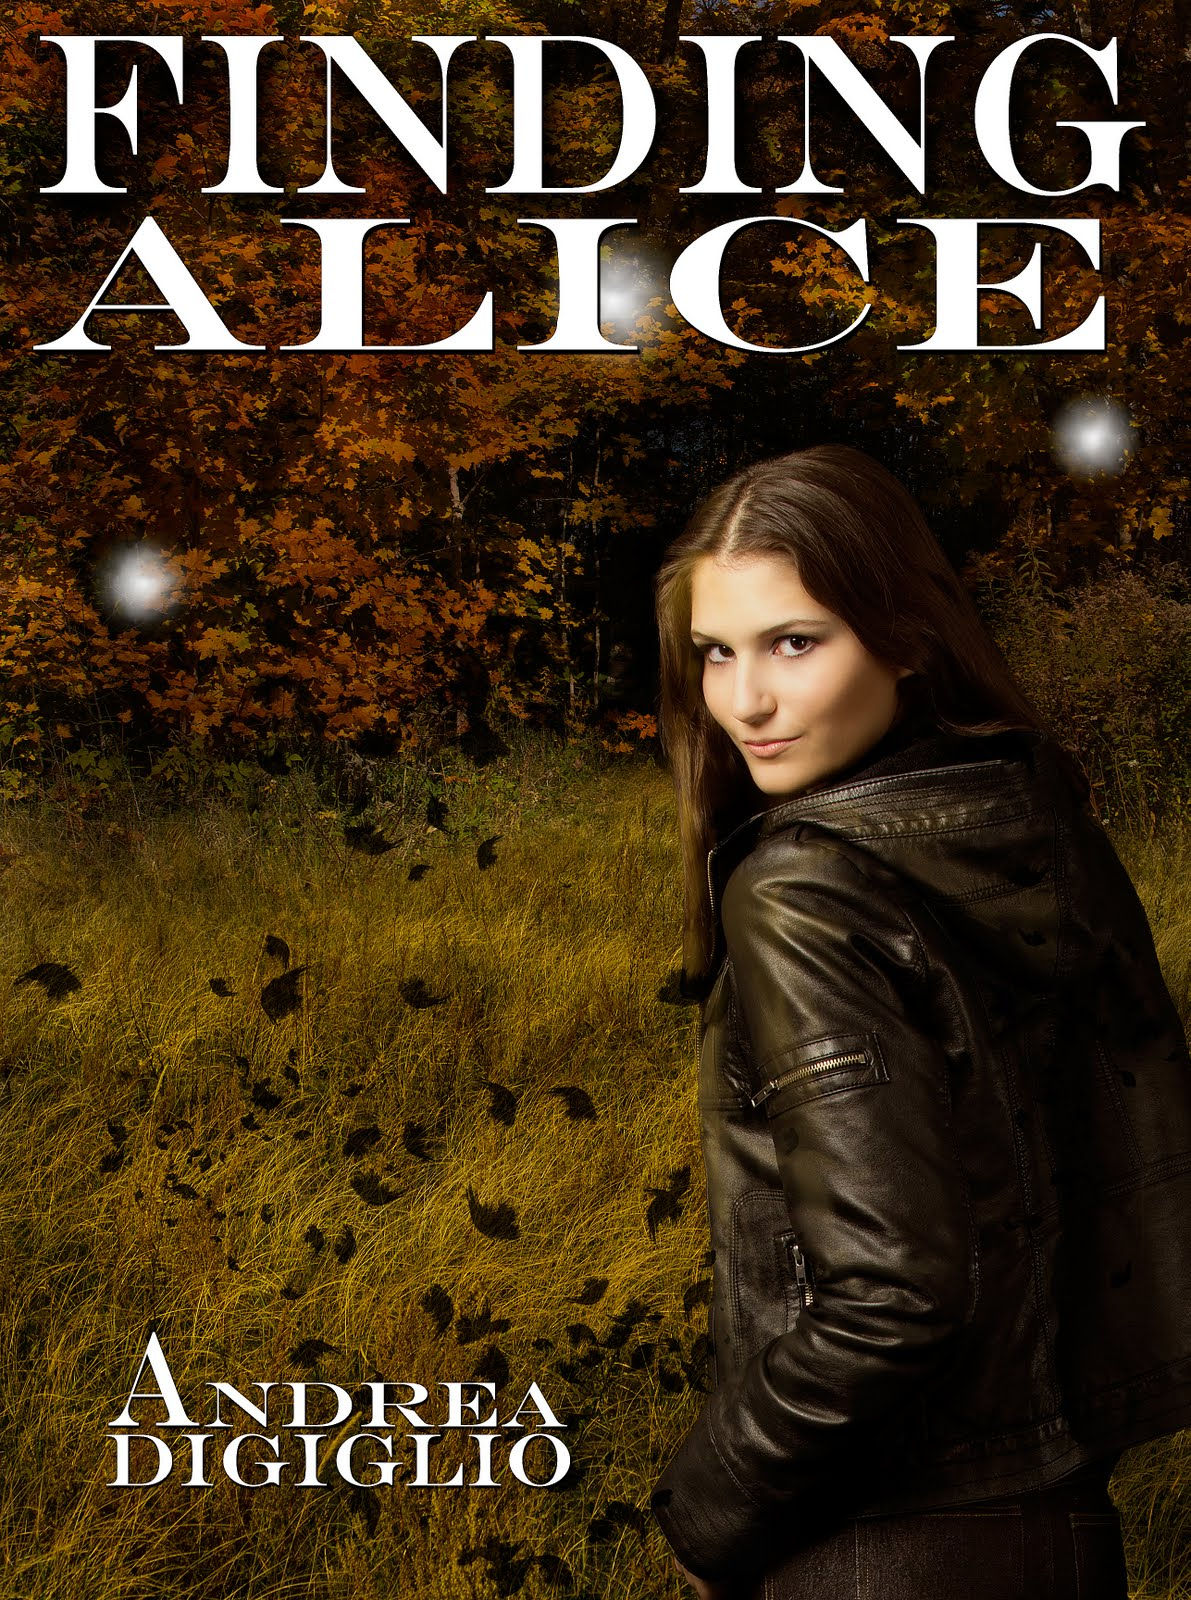 Interview with paranormal author Andrea DiGiglio